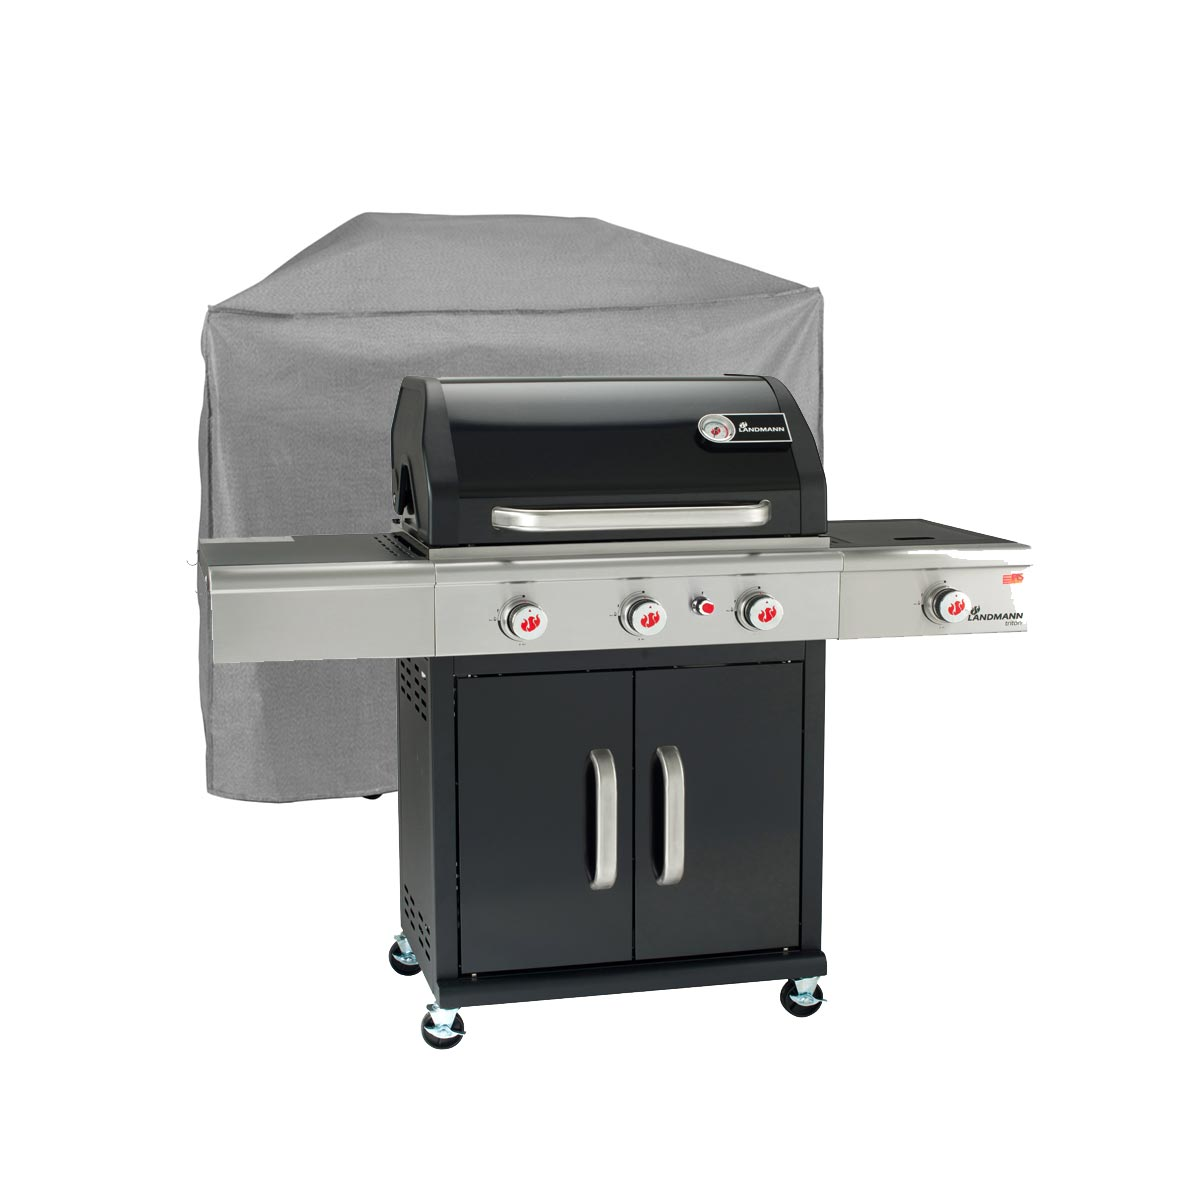 landmann-3-burner-braai-with-cover